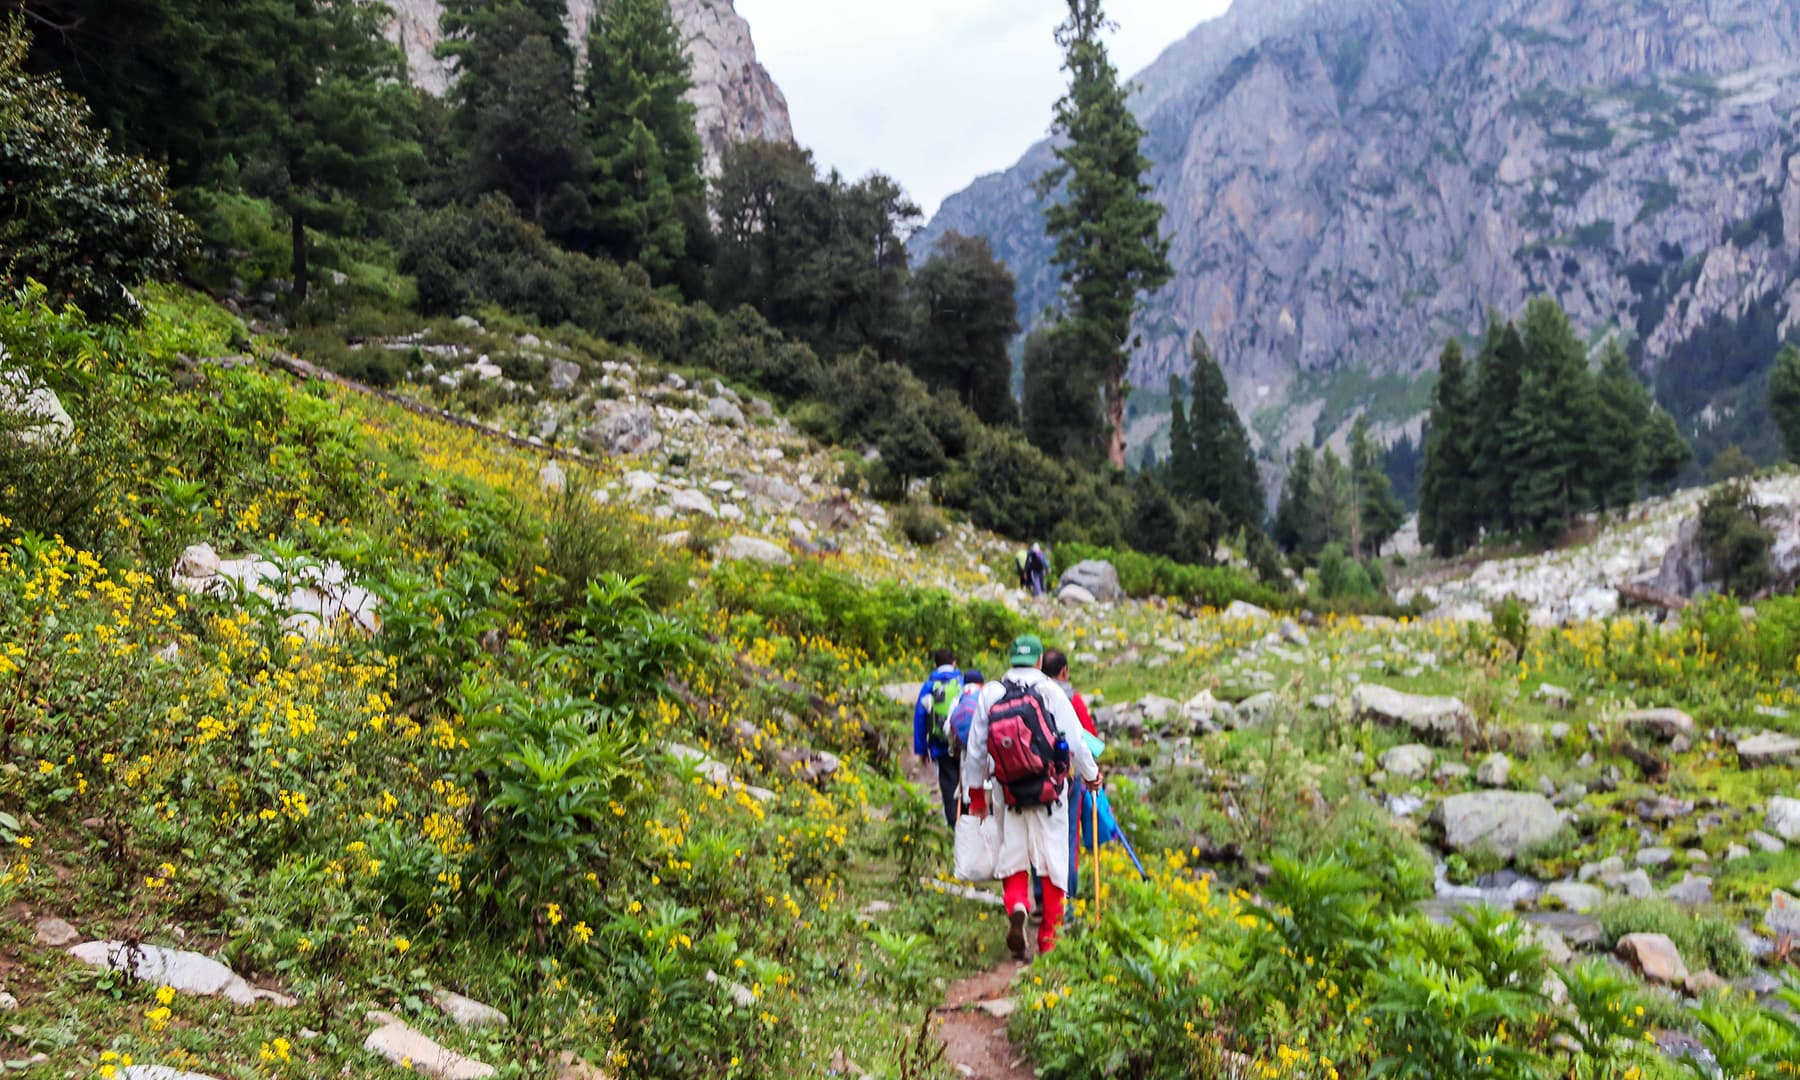 Trekkers and tourist pass through Janshai meadows towards Mastij Lake.